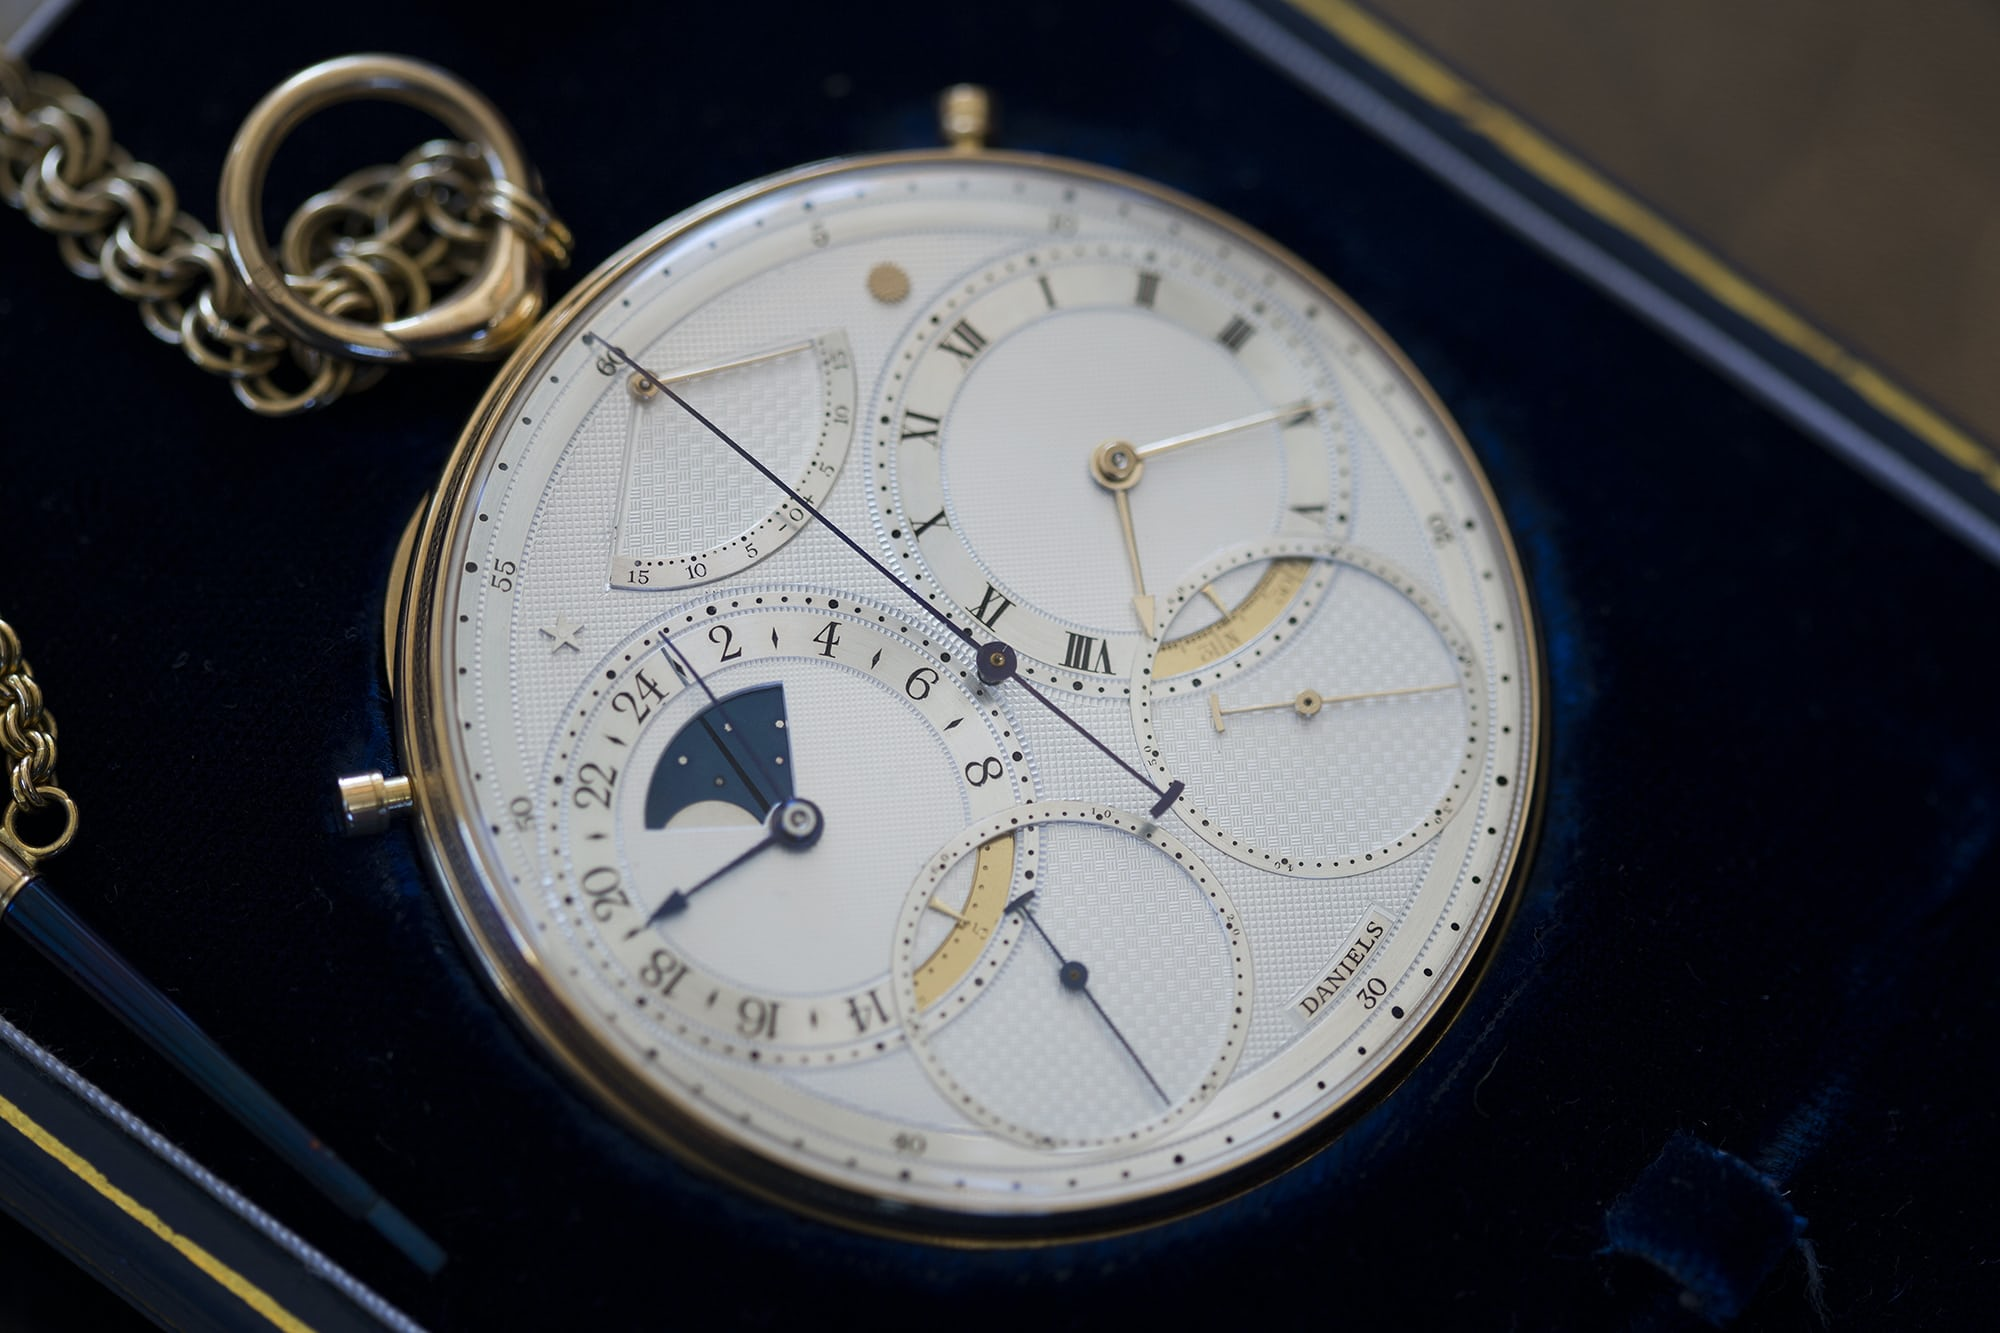 The Daniels Space Traveller pocket watch, also sometimes called  Auction Report: Sotheby's To Offer The Daniels 'Space Traveller' Watch, September 19th In London Auction Report: Sotheby's To Offer The Daniels 'Space Traveller' Watch, September 19th In London 20010454 copy